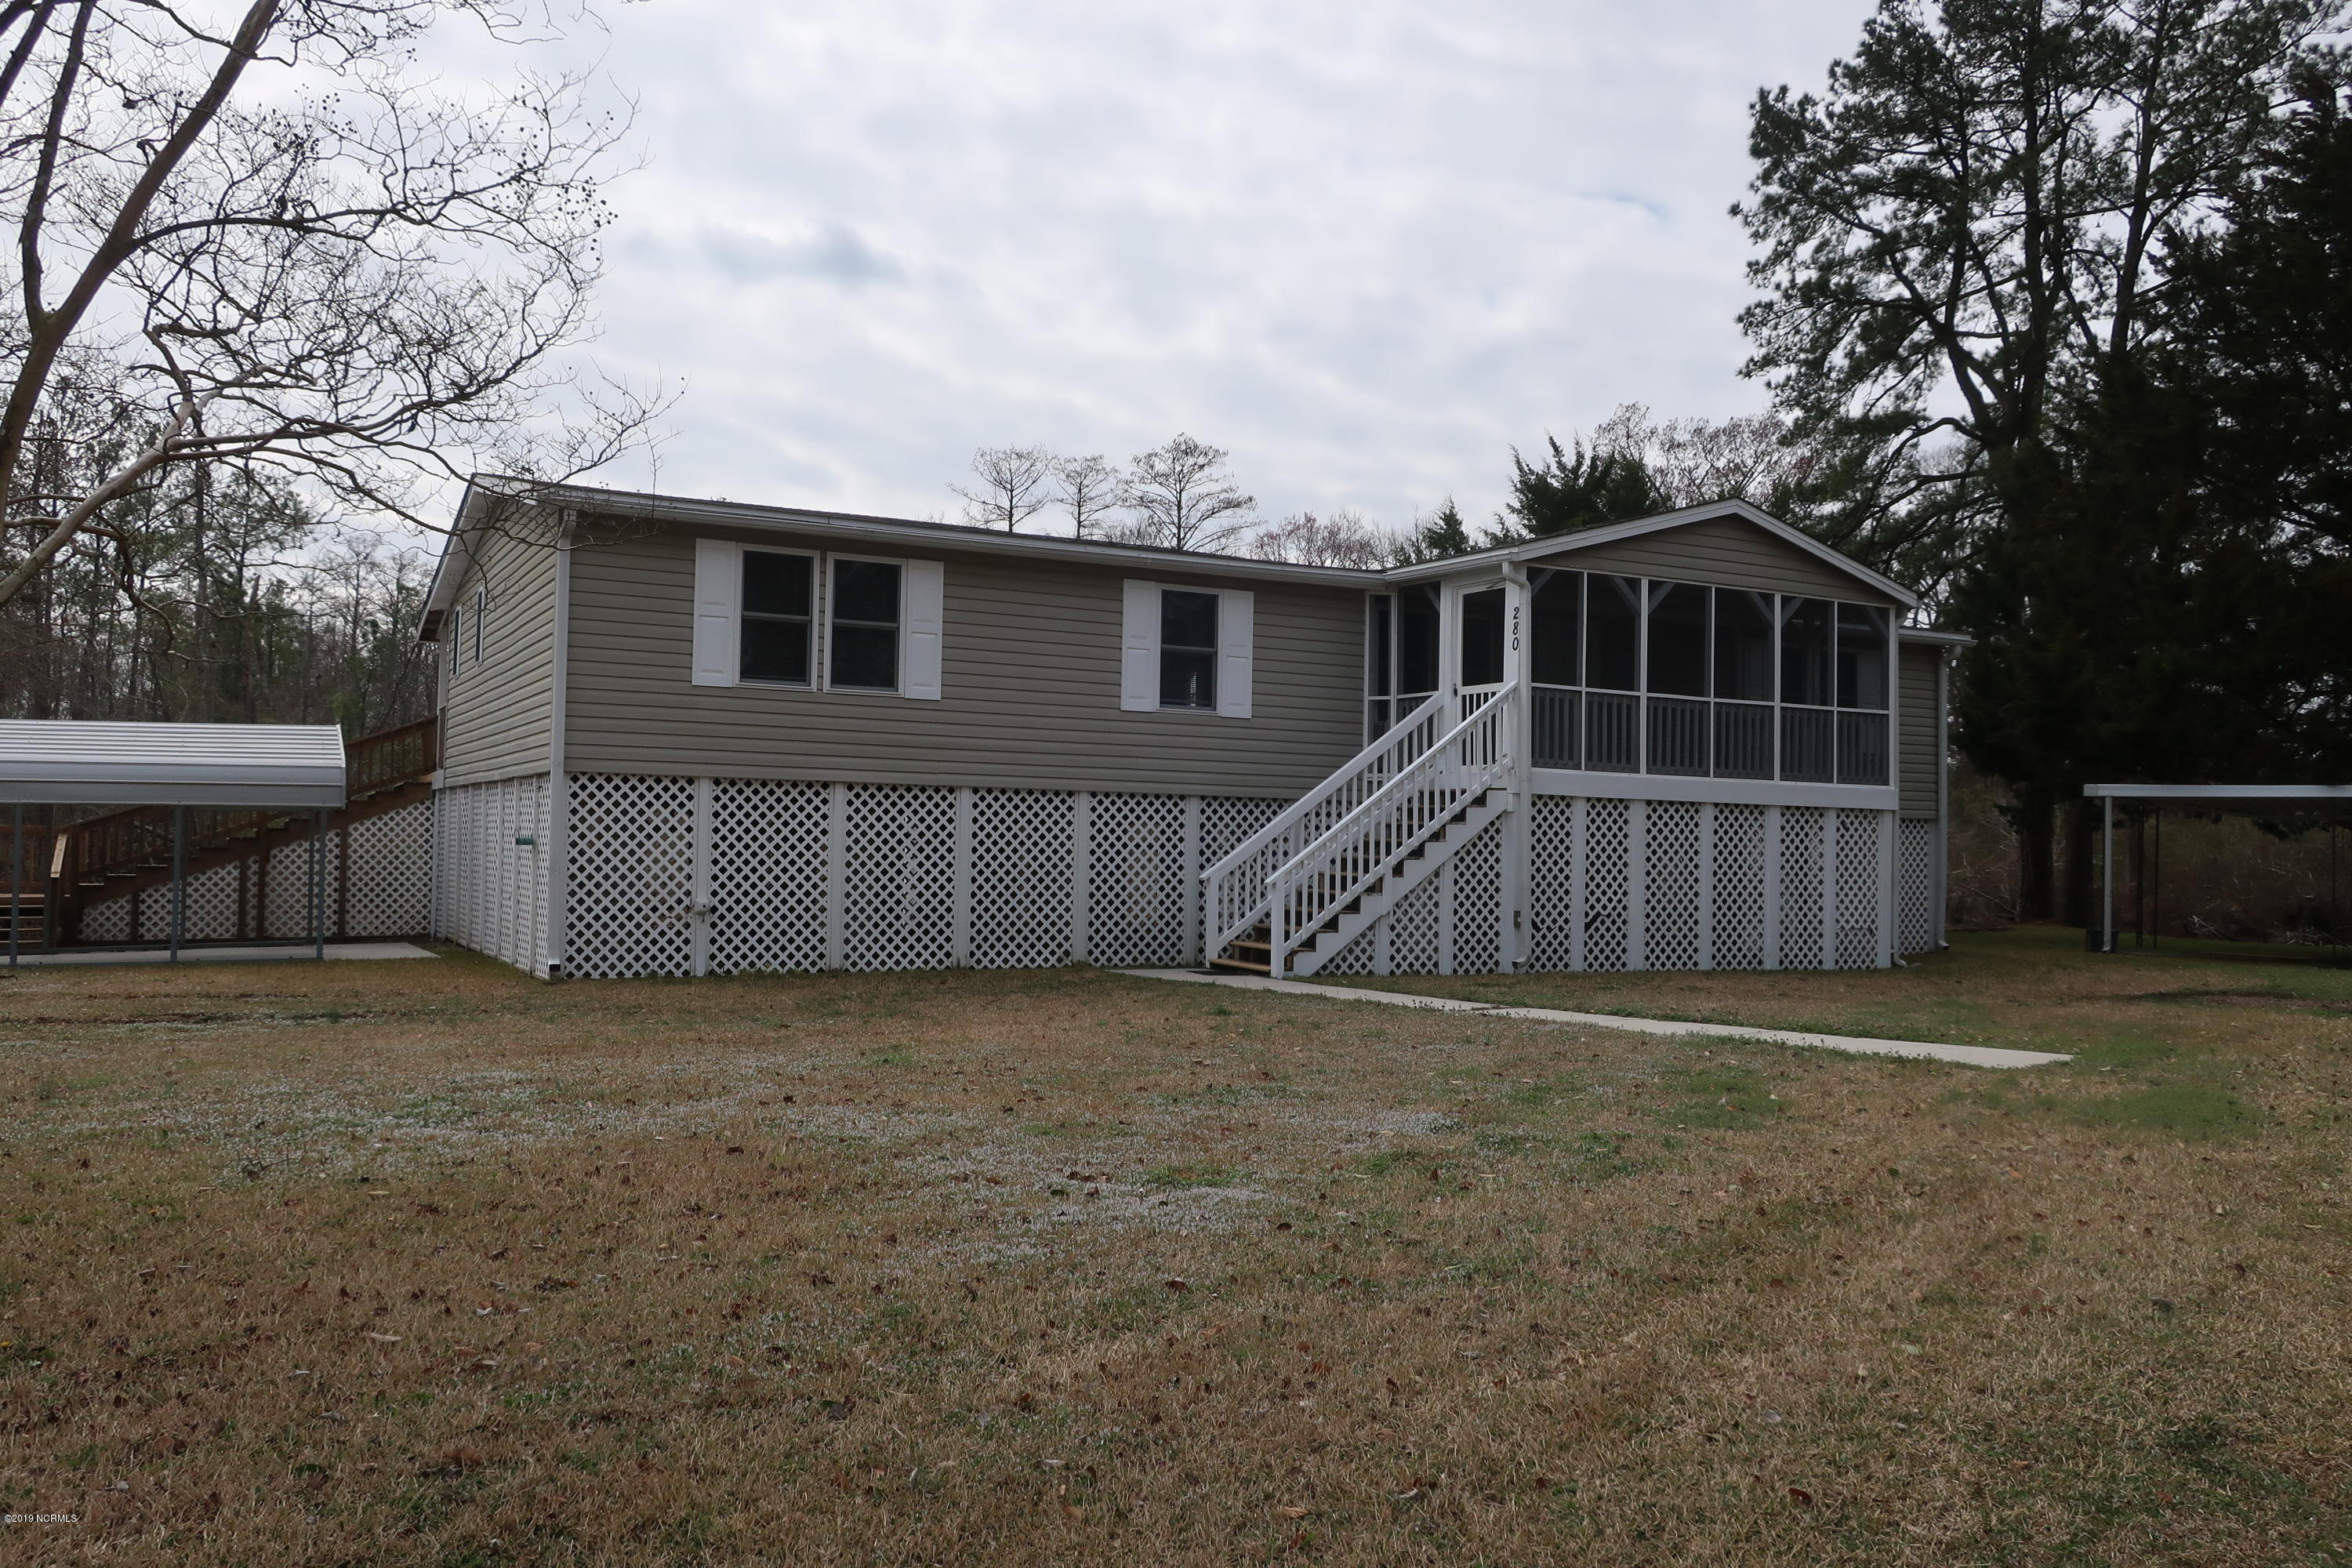 280 Fort Shores Drive, Chocowinity, North Carolina, 3 Bedrooms Bedrooms, 7 Rooms Rooms,2 BathroomsBathrooms,Manufactured home,For sale,Fort Shores,100153063